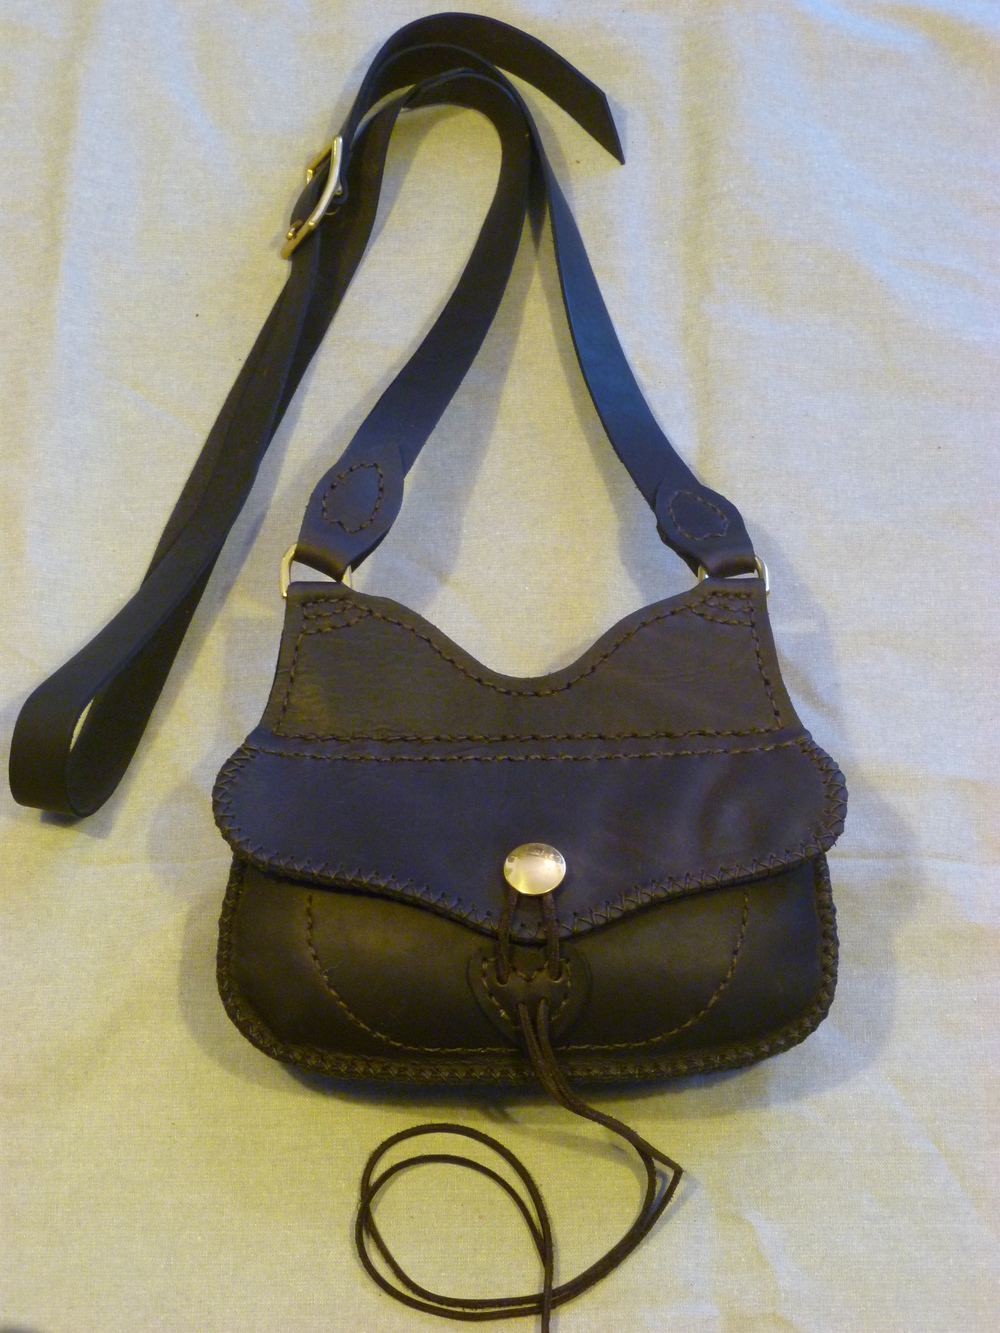 "Small Hunting Bag with no side pocket:  Two inside pockets and an outside pocket on the back of the bag with a flap.  Lanyard closure with brass button catch.  Size: 9.5"" x 4.5"" x 2.5""  Price: $70.00  Inventory Tag: GB-7-SMB"